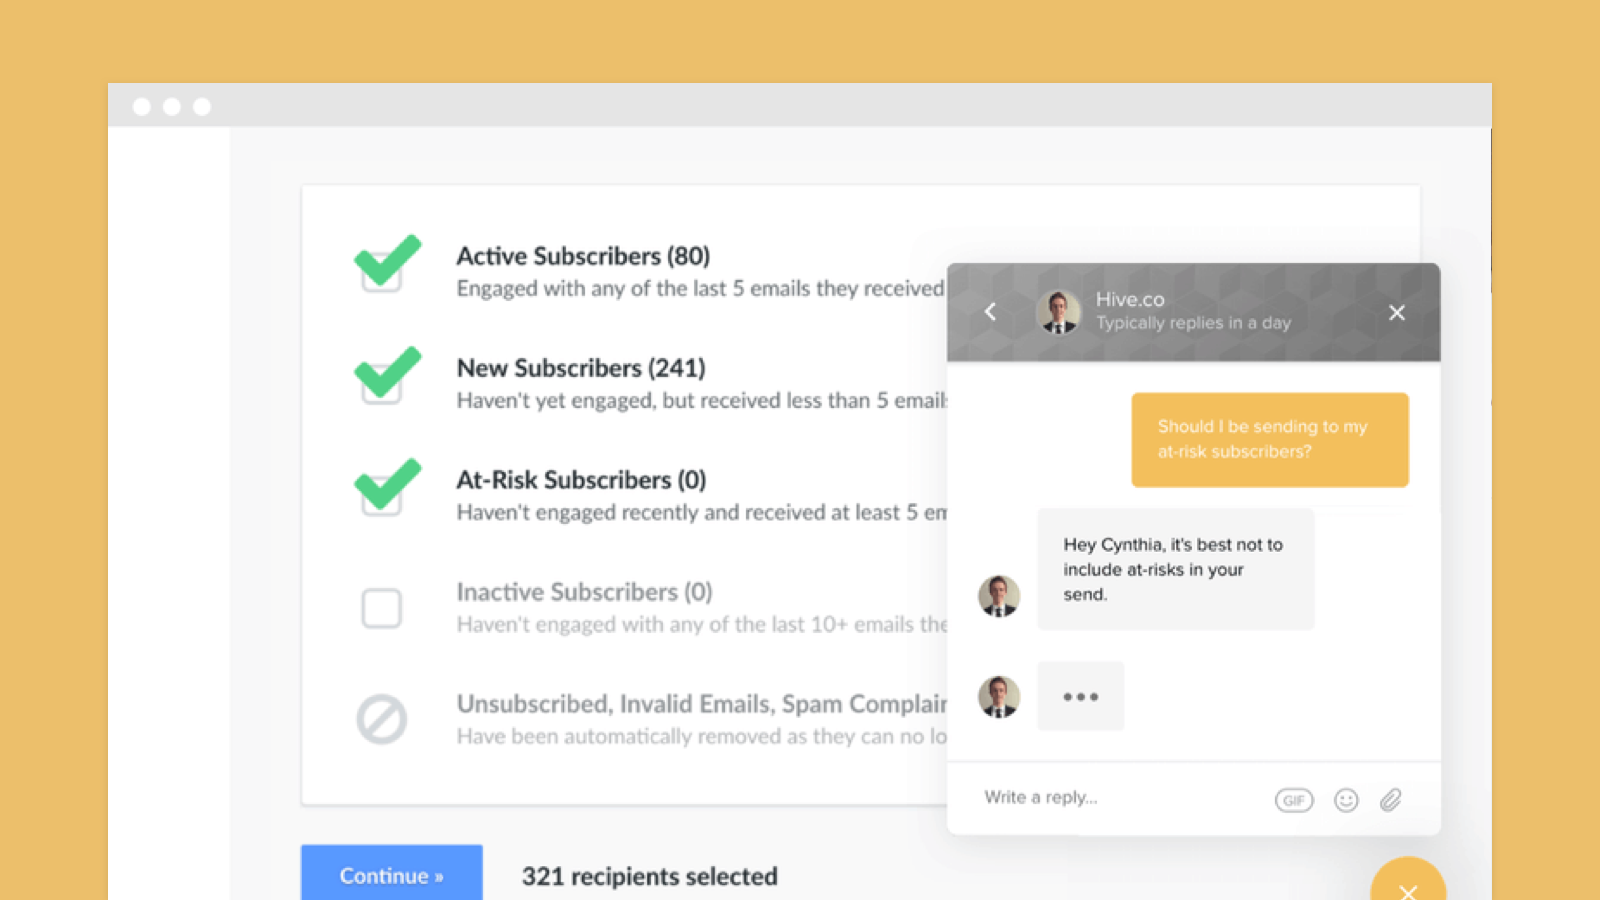 hive.co's customer service team, and built in deliverability